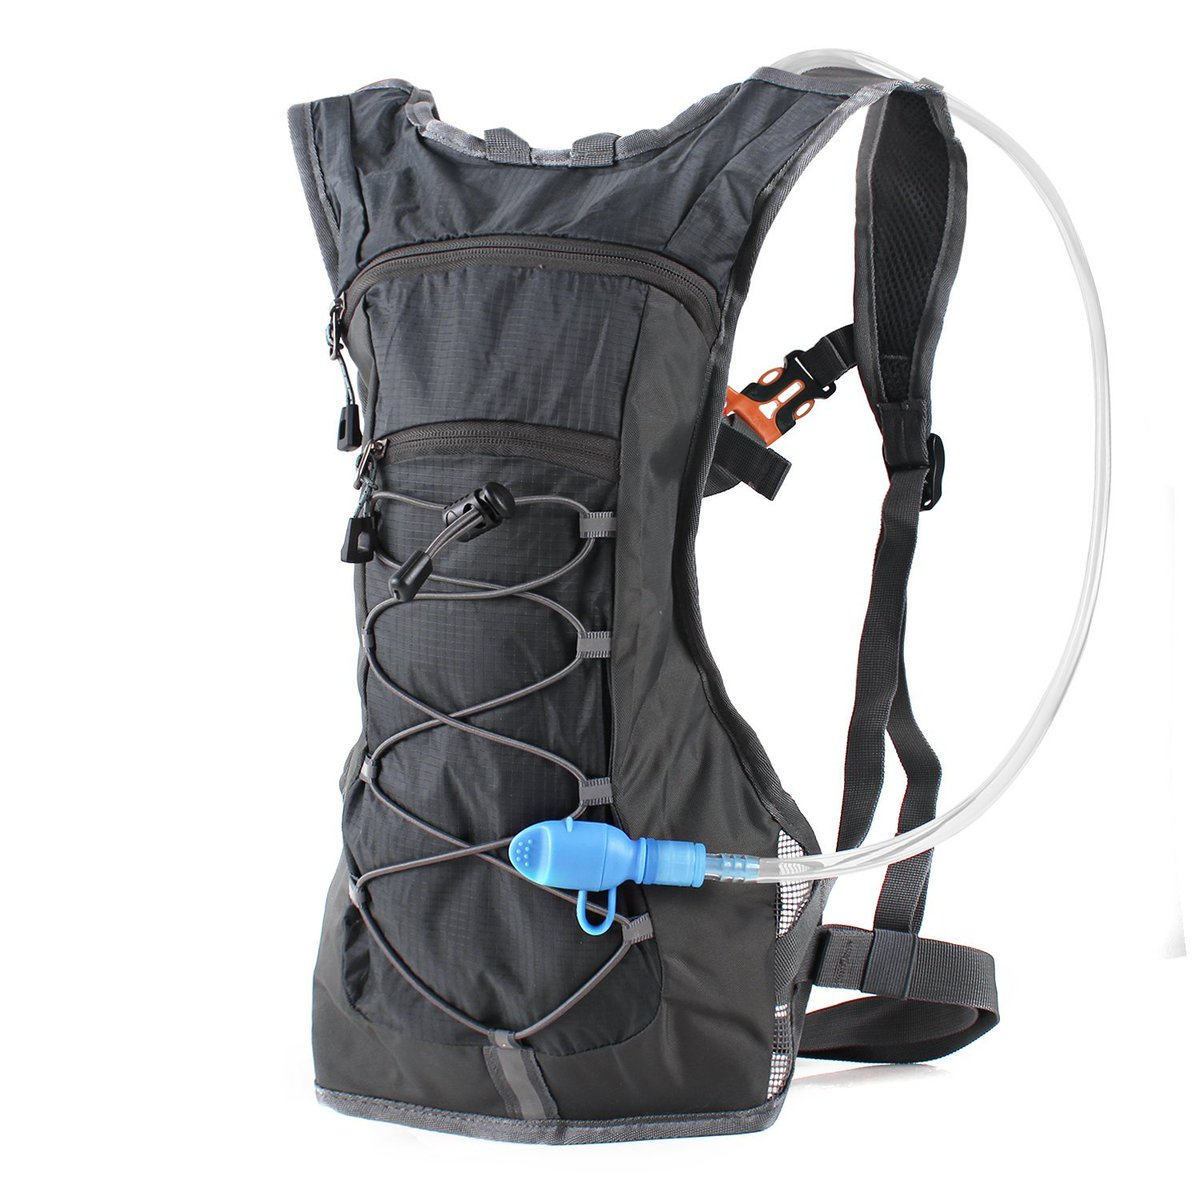 TACTICAL Outdoor Hydration Backpack with 2.5L BPA Free Water Bladder Mili